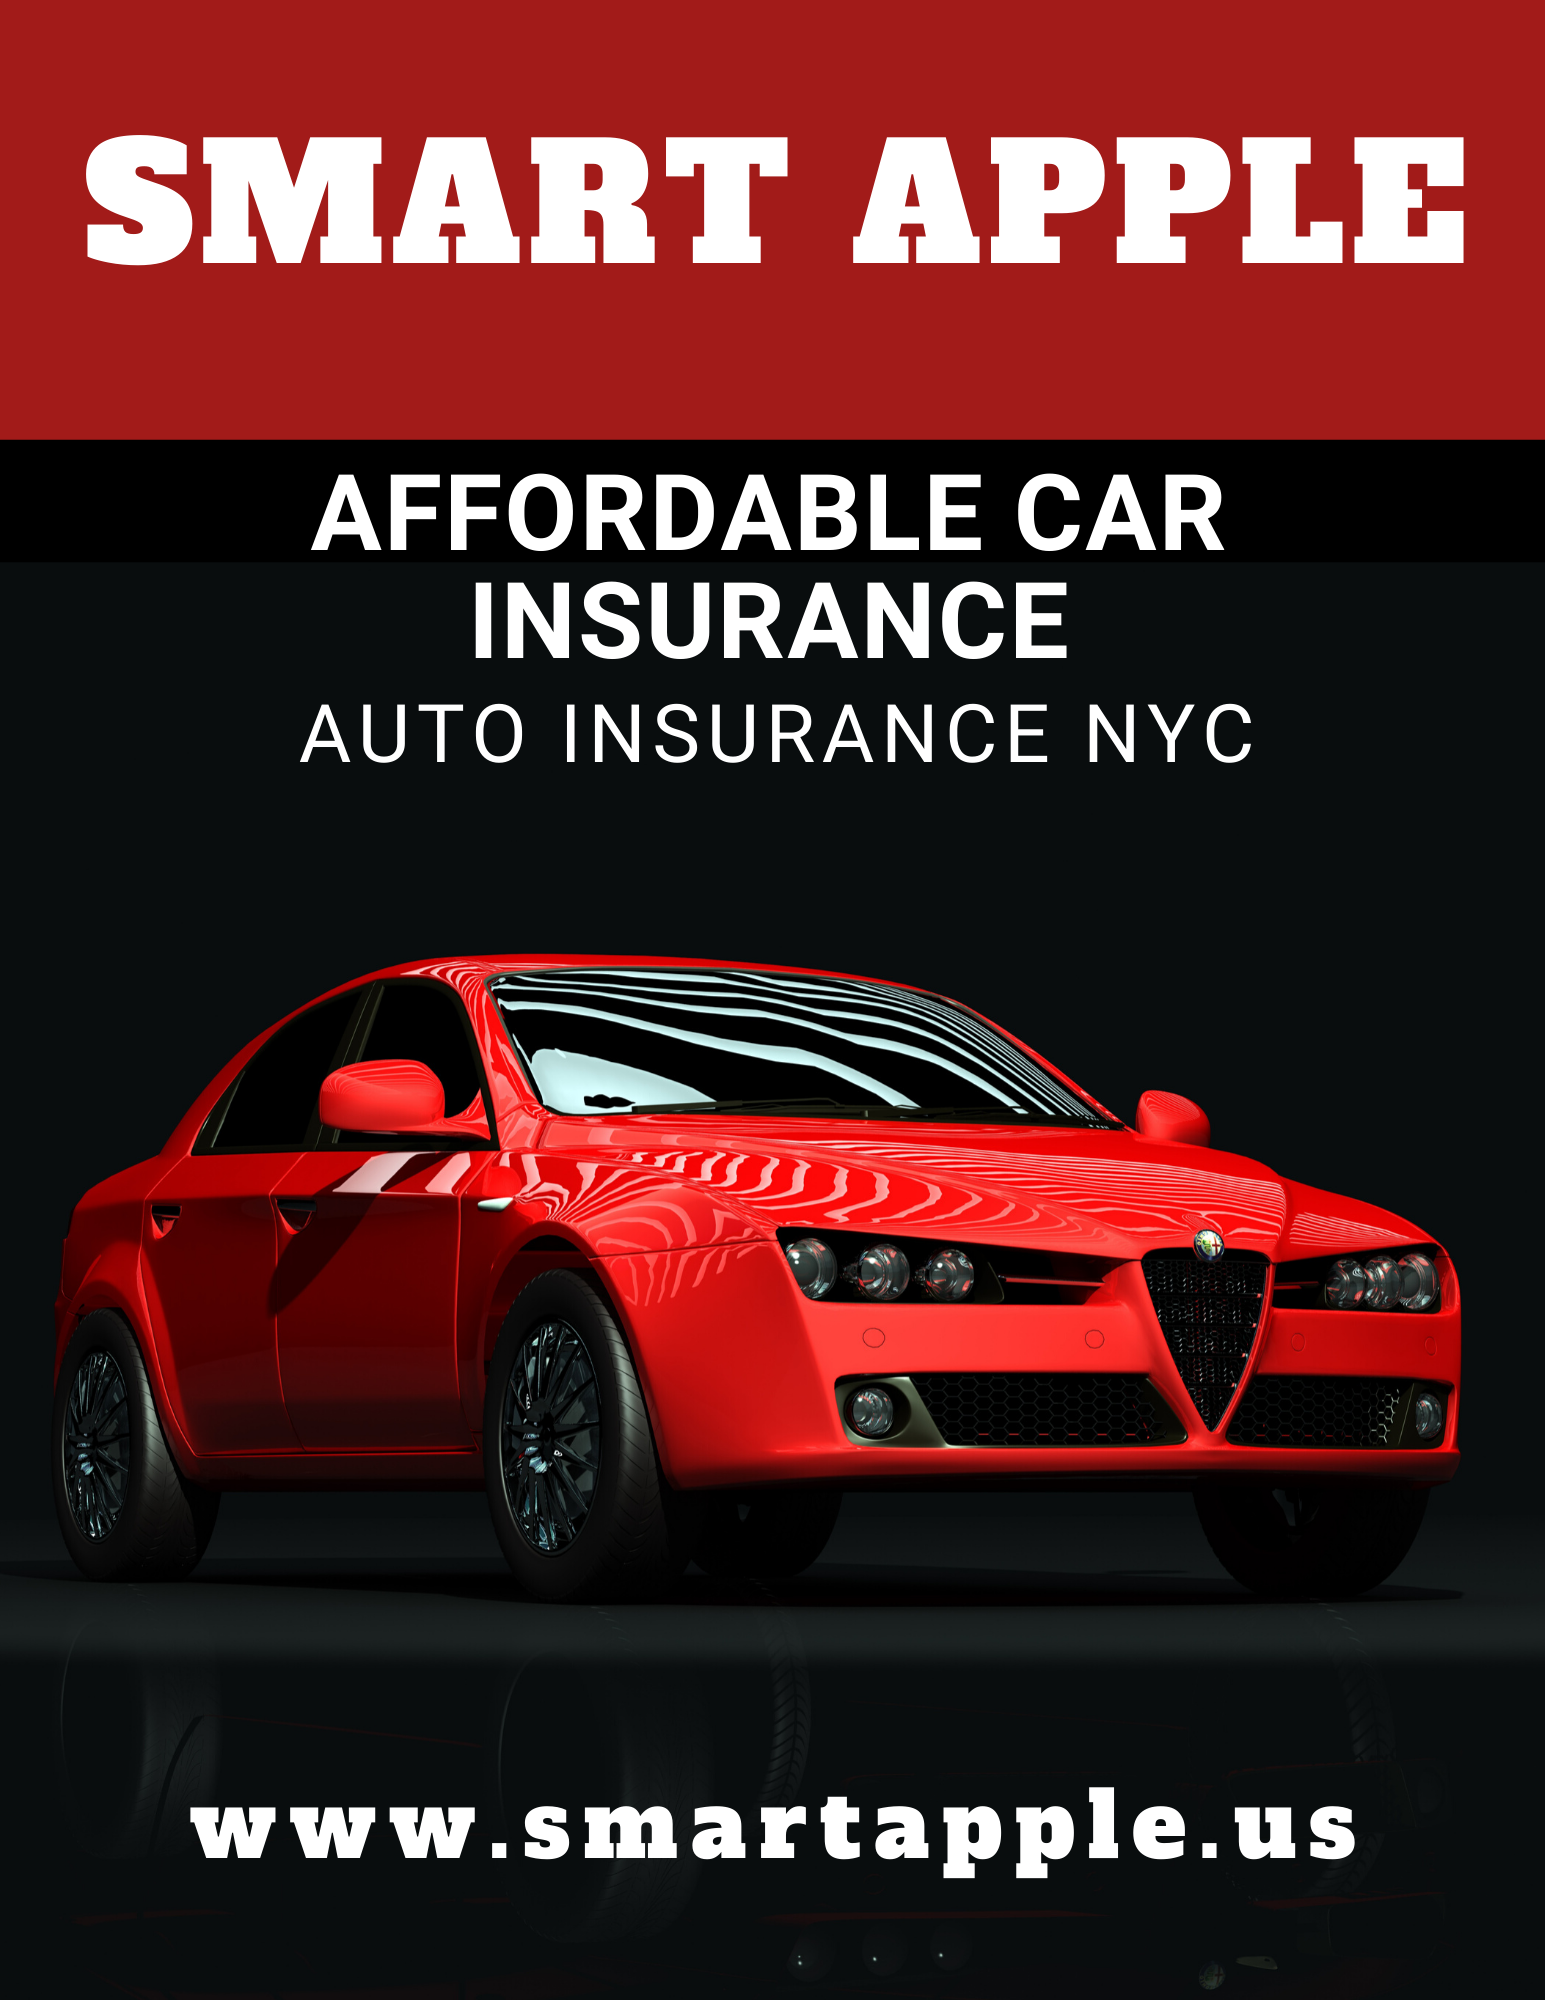 Affordable Car Insurance In New York City in 2020